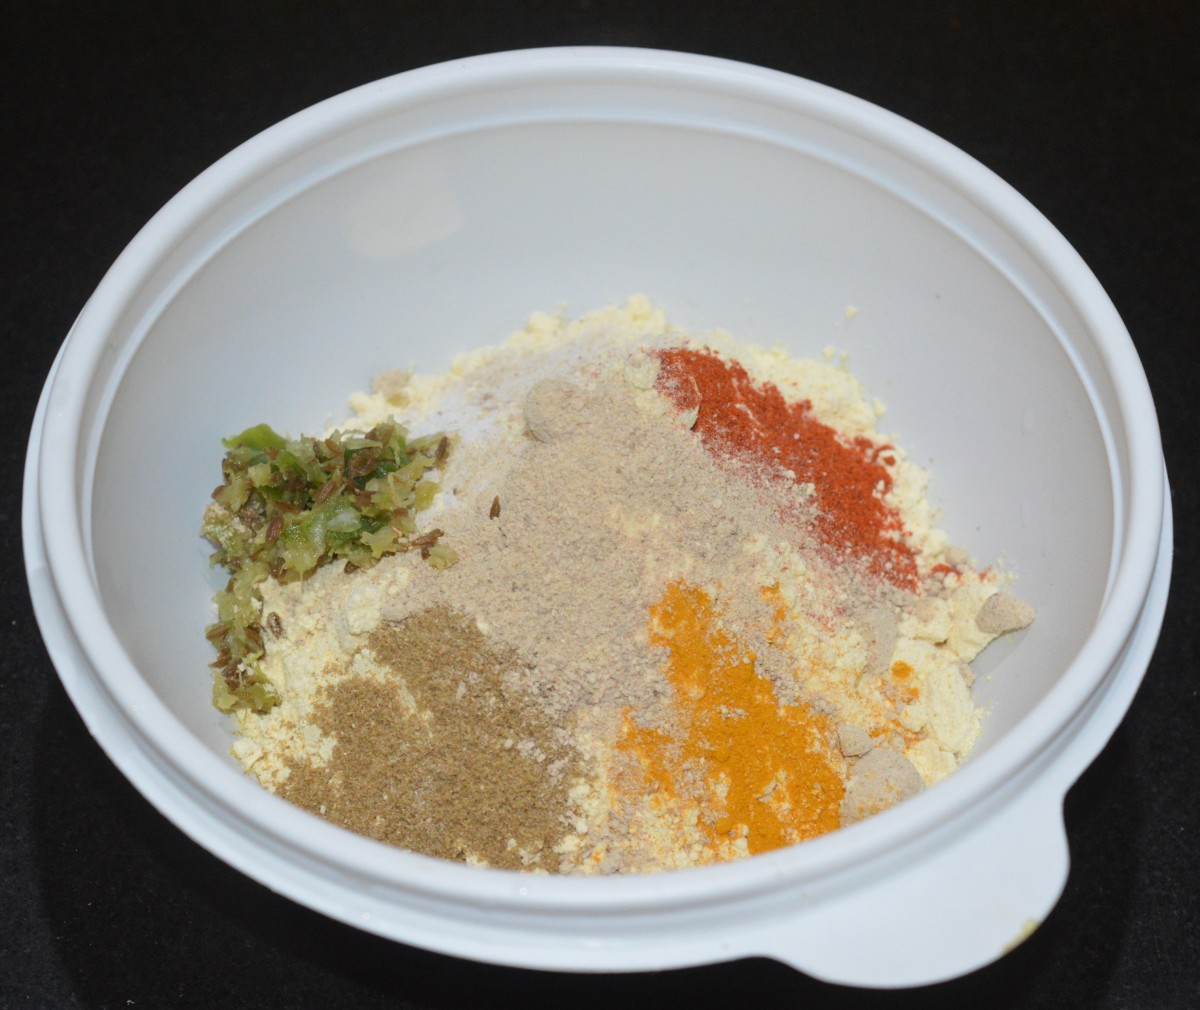 Step three: For making the batter, add chickpea flour (besan), red chili powder, the paste, amchur powder, coriander powder, turmeric powder, and salt to a mixing bowl. Add water little by little and make a lump-free thick batter.